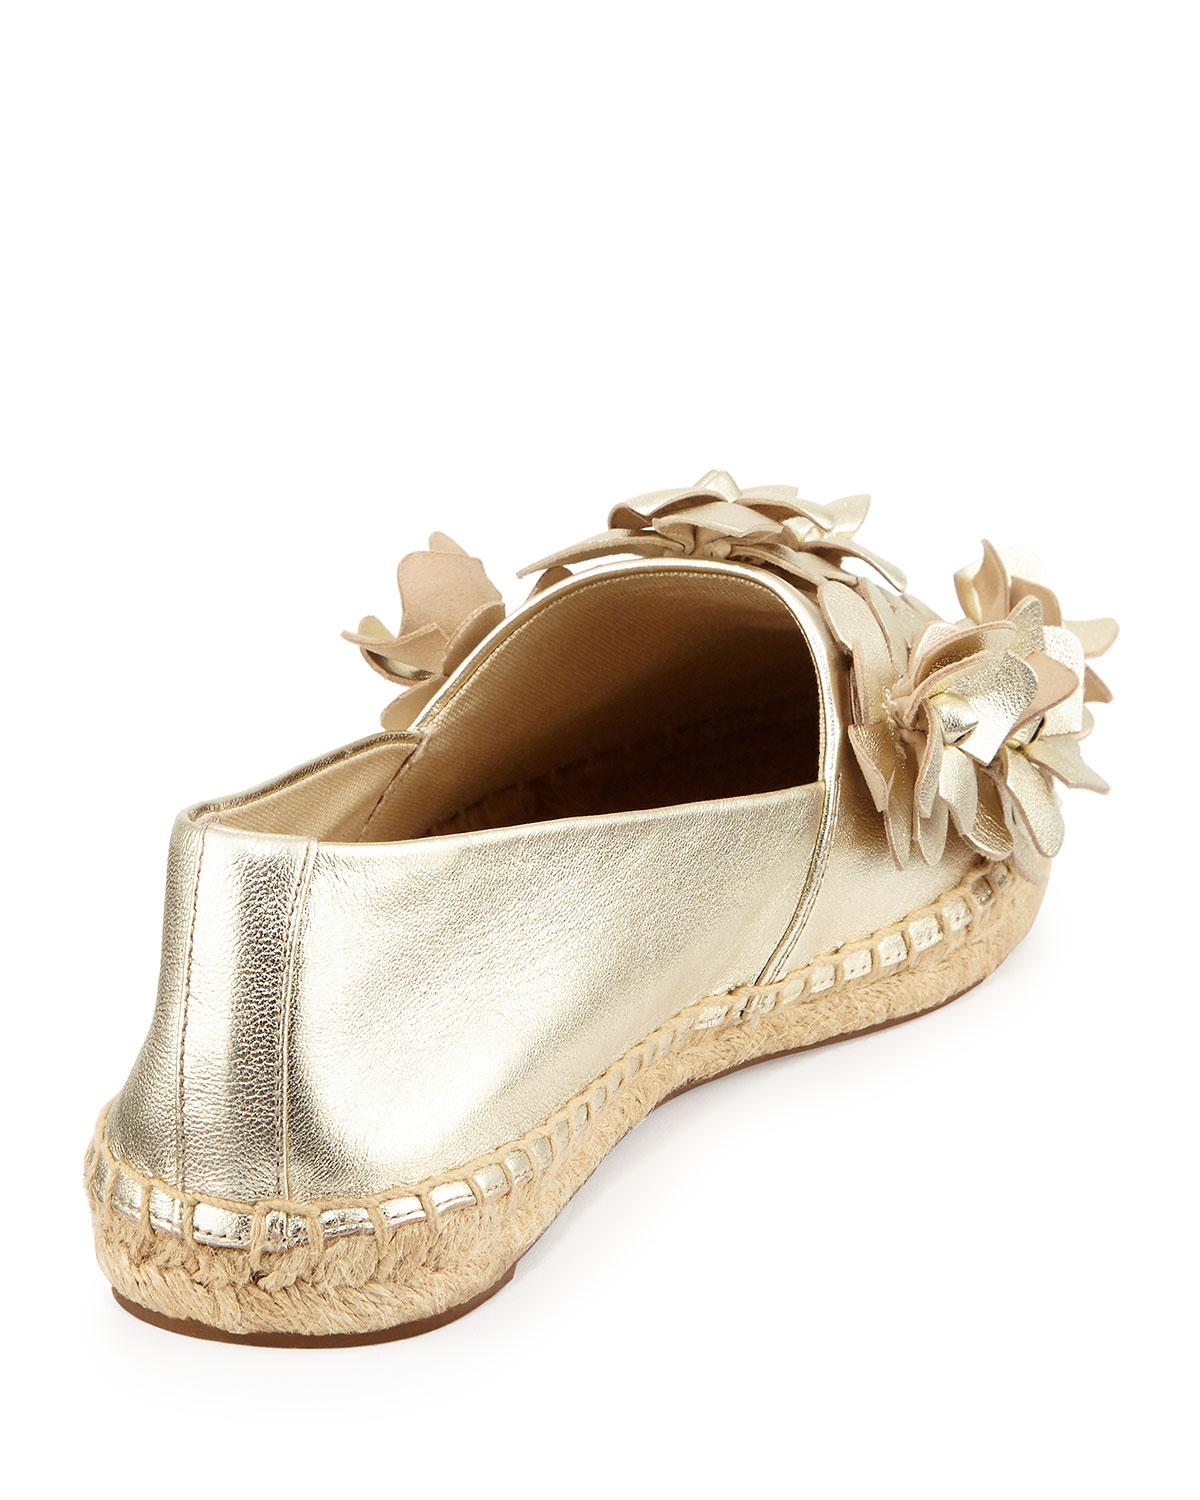 Lyst Tory Burch Blossom Leather Espadrille Flat In Metallic